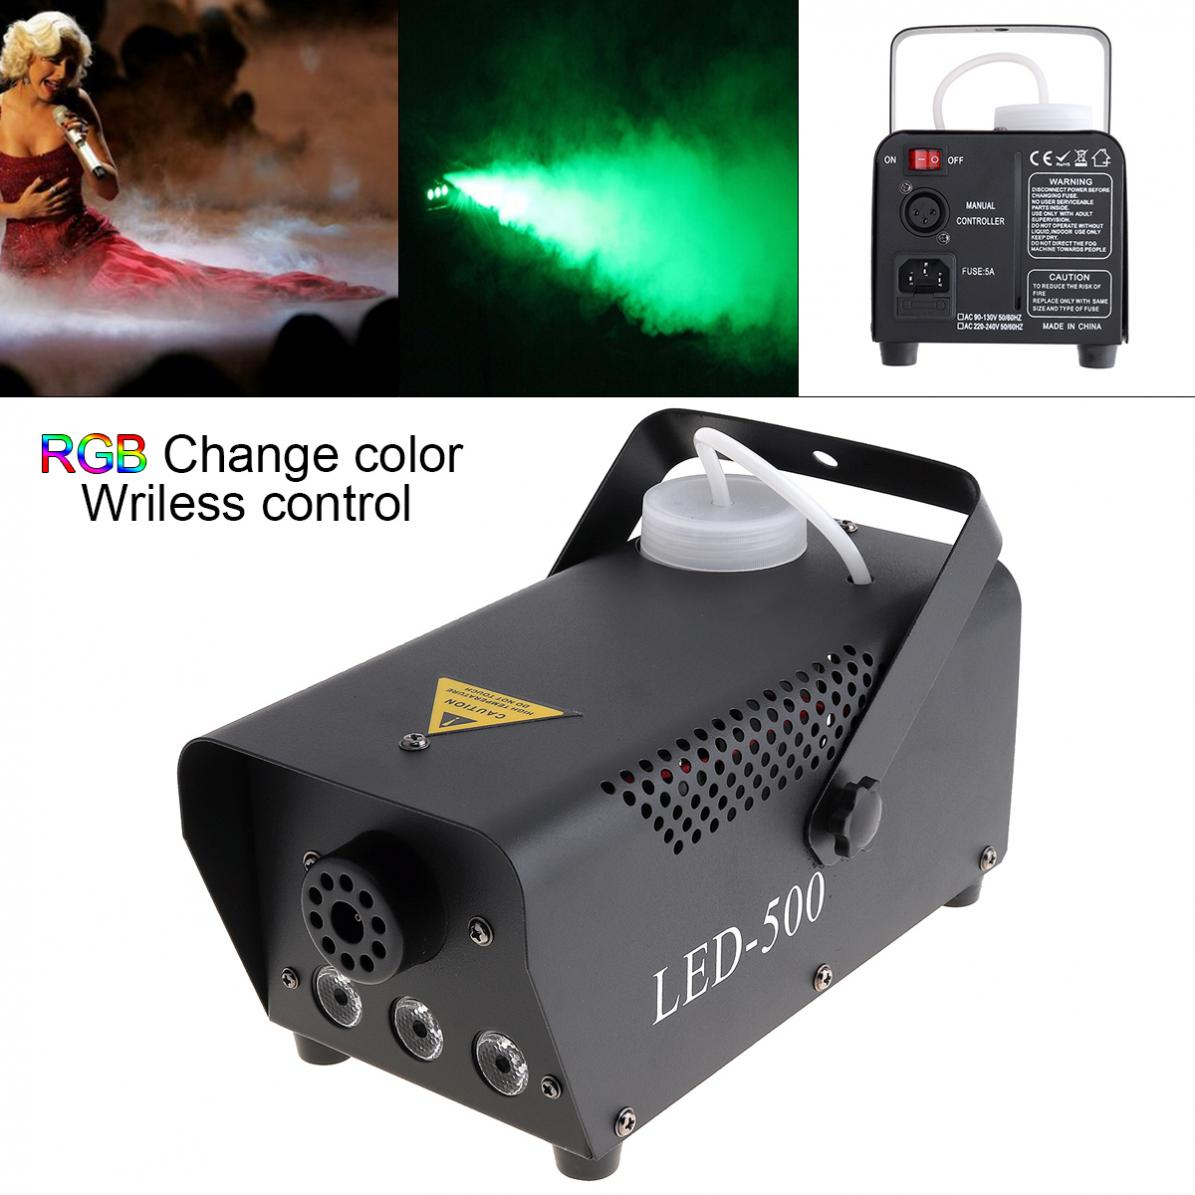 LED 500W Wireless Control Smoke Machine RGB Color LED Fog Machine/Stage Smoke Ejector/ Professional LED Fogger for Bar/KTV high quality wireless control led 400w smoke machine rgb chang color led fog machine professional led stage 400w smoke ejector